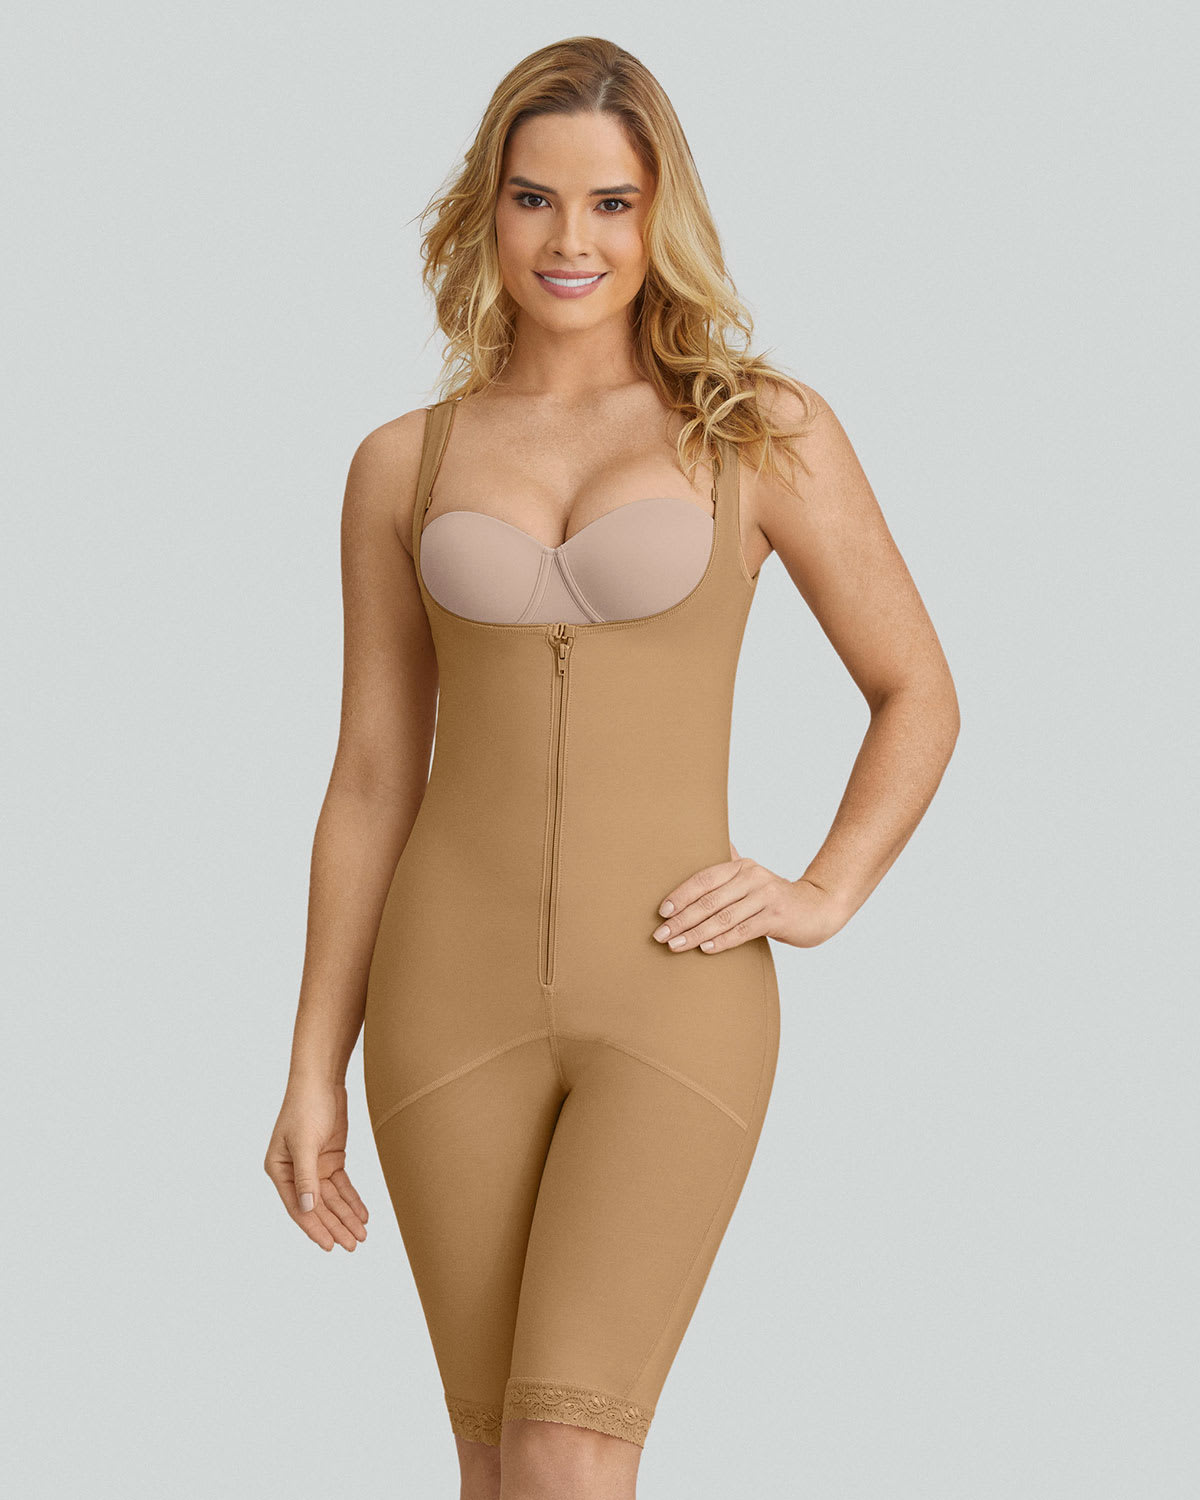 Compression Garments After Lipo - Doctor Recommended